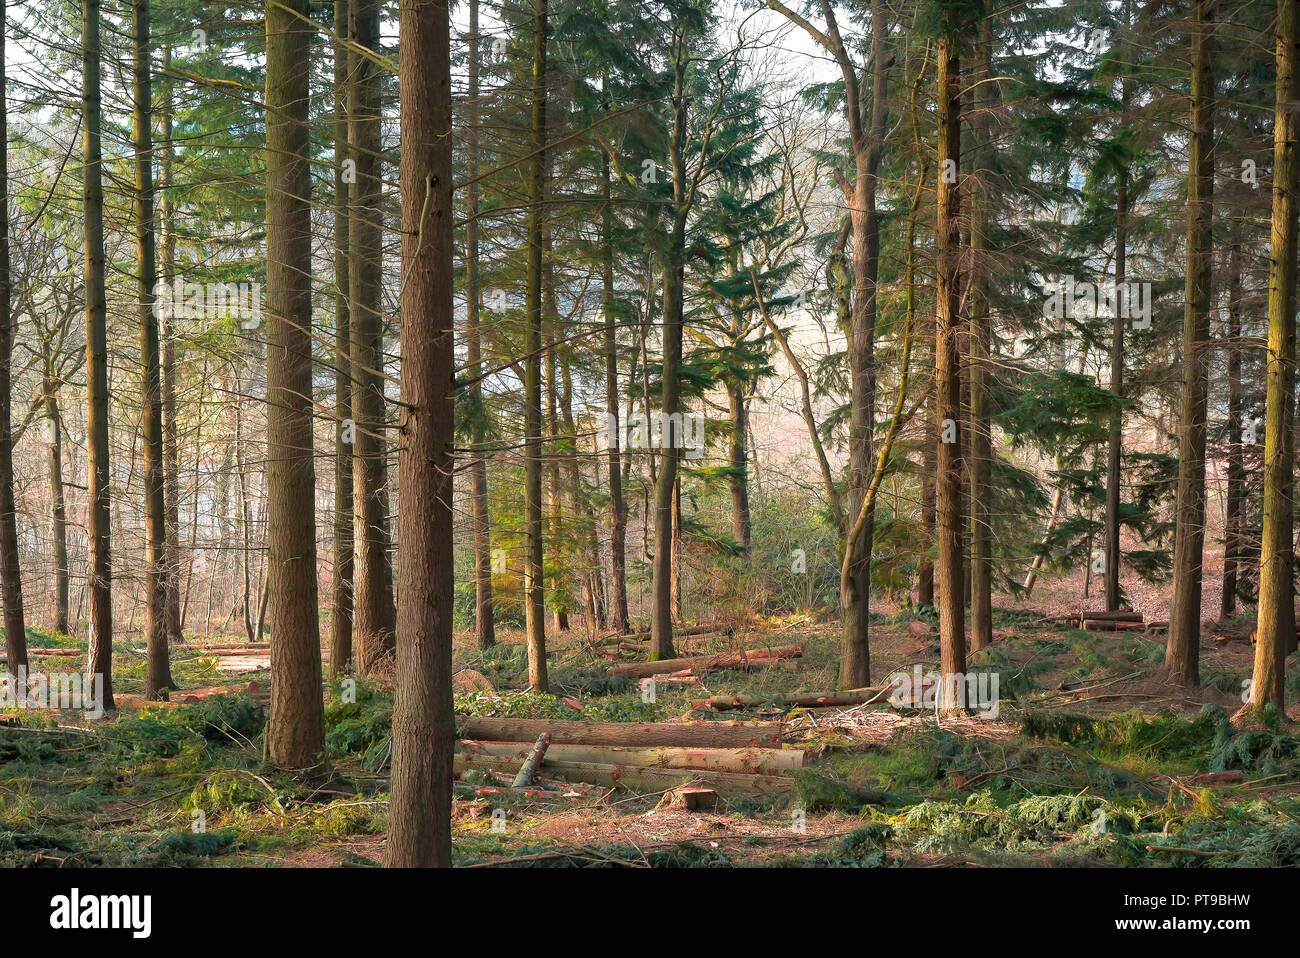 Landscape shot inside UK woodland on a cold February morning in the sunshine where some trees have been felled and are lying on forest floor. - Stock Image